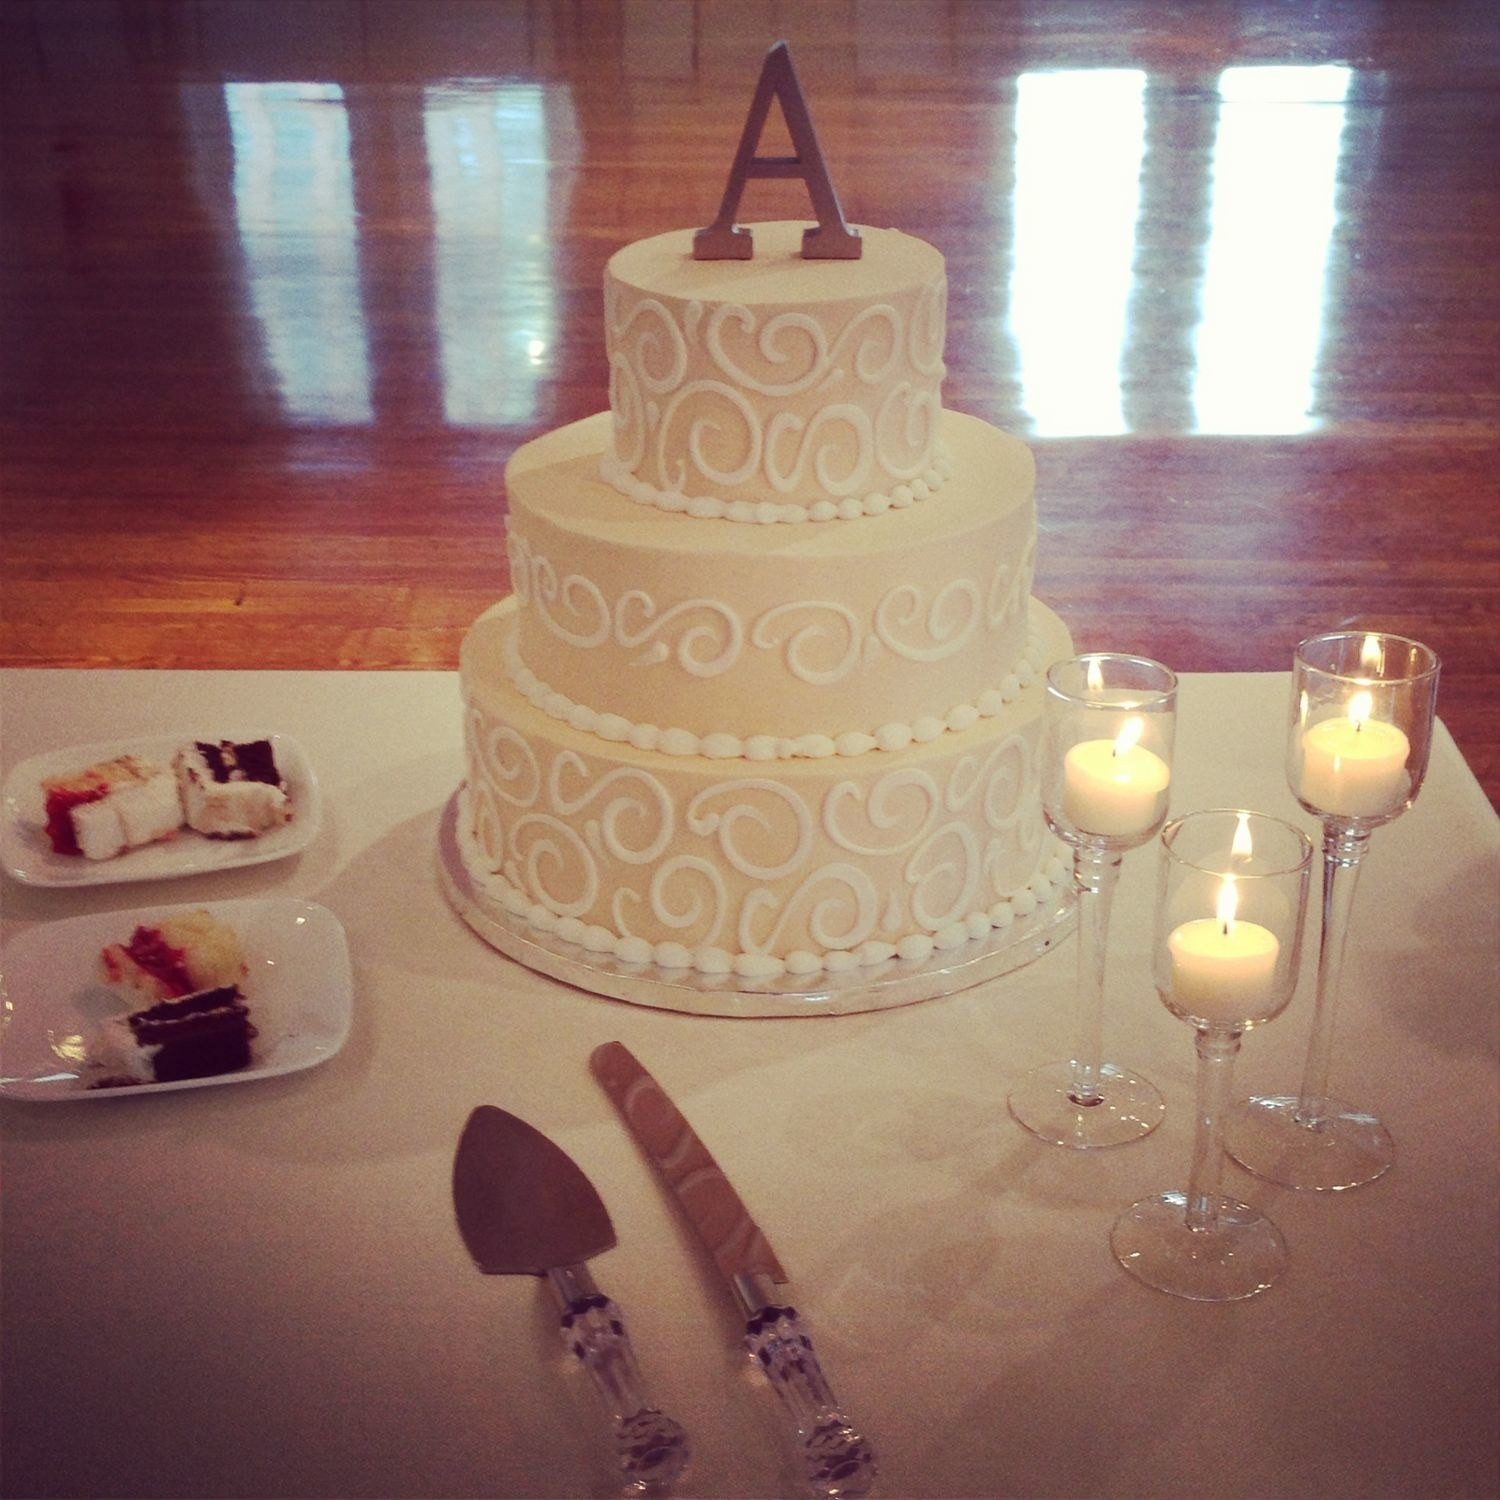 Walmart Wedding Cakes Pictures  News Flash Walmart Makes Wedding Cakes And They re GOOD